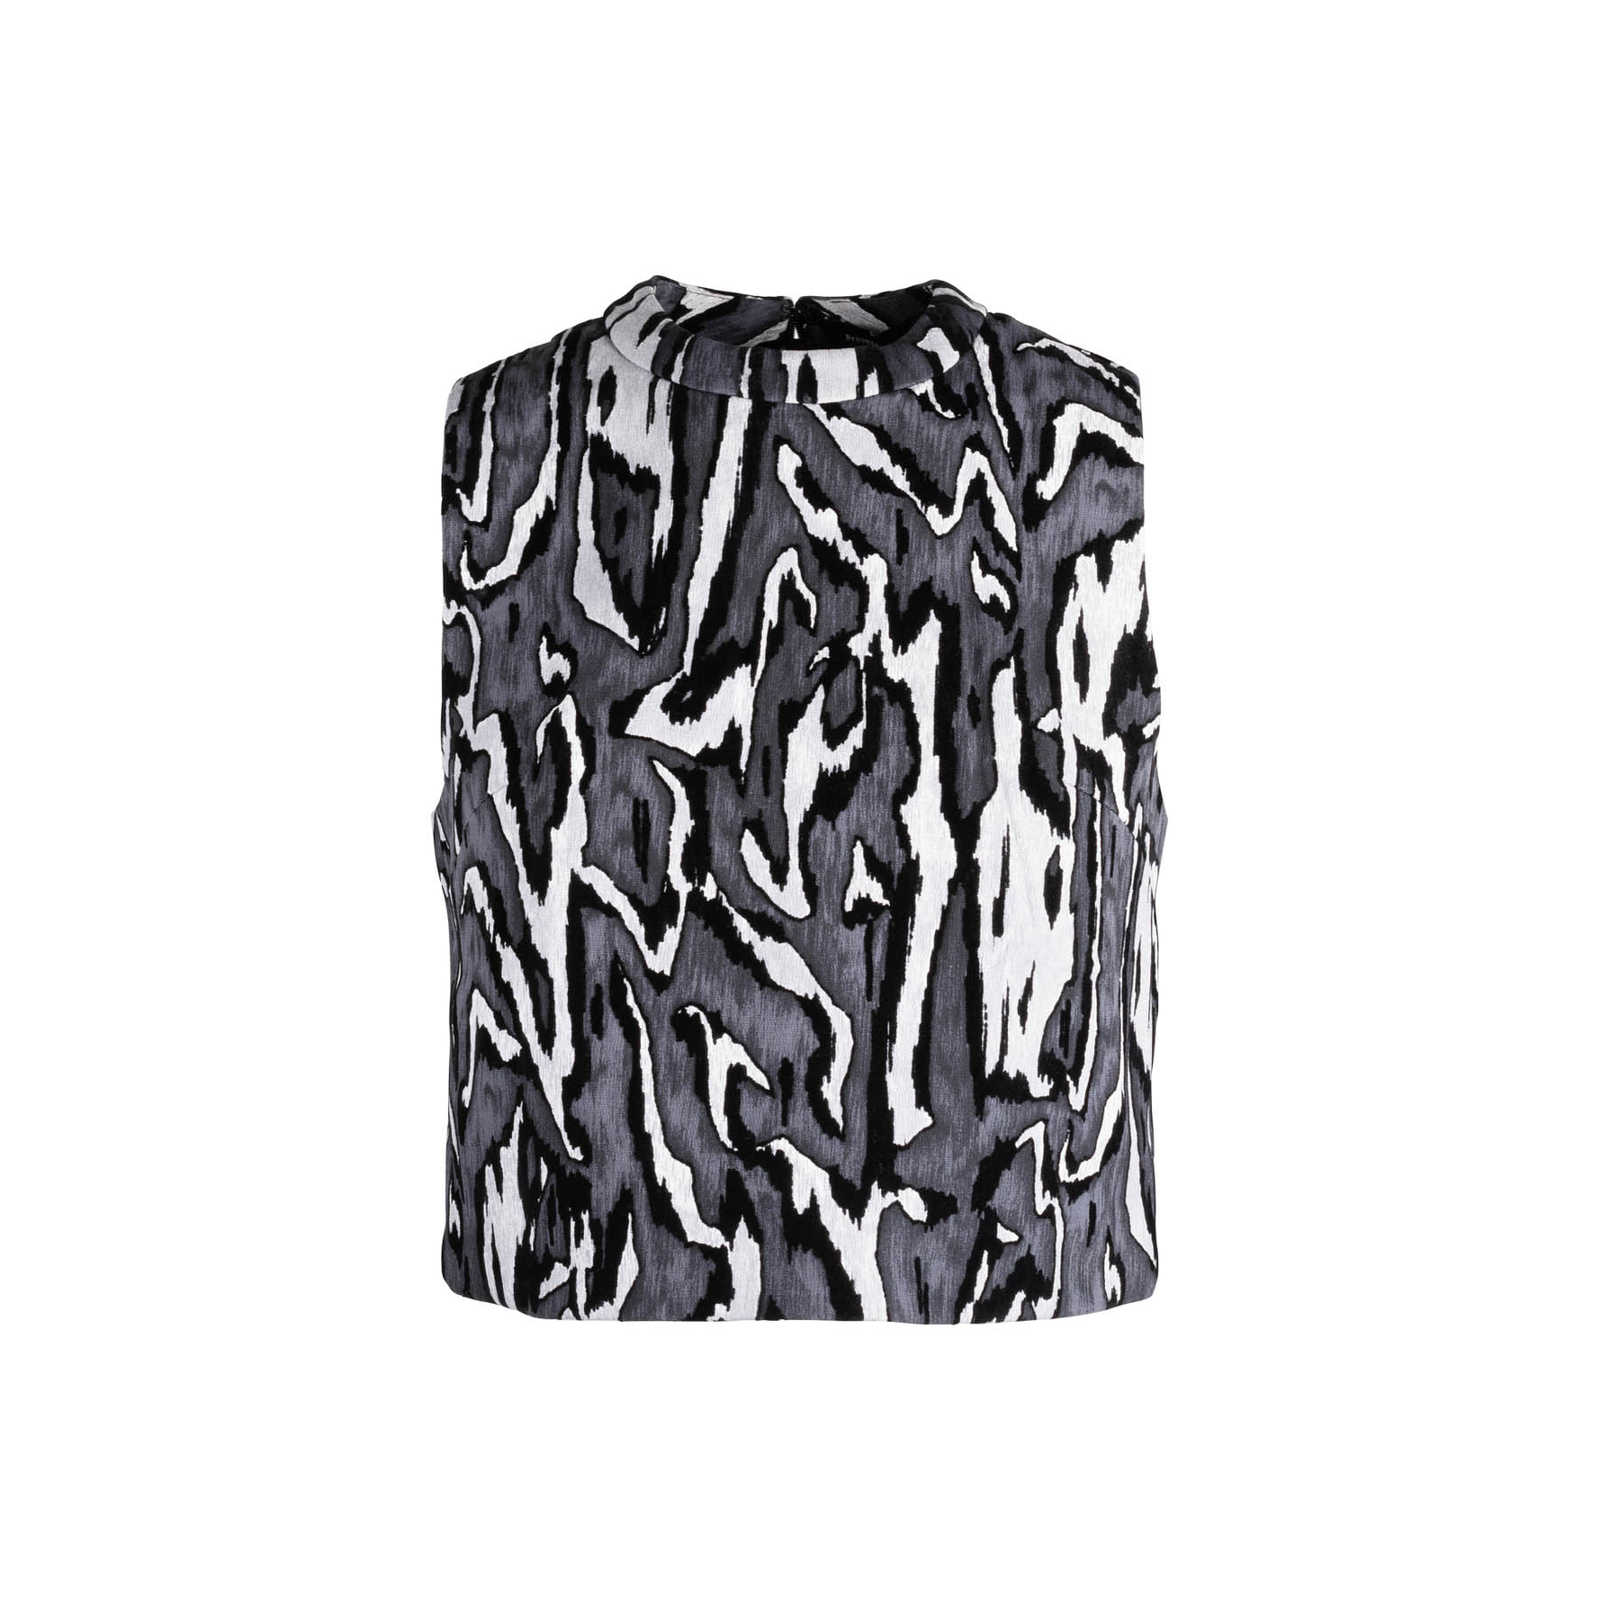 Authentic Second Hand Proenza Schouler Velvet Pattern Top Pss 196 00023 The Fifth Collection